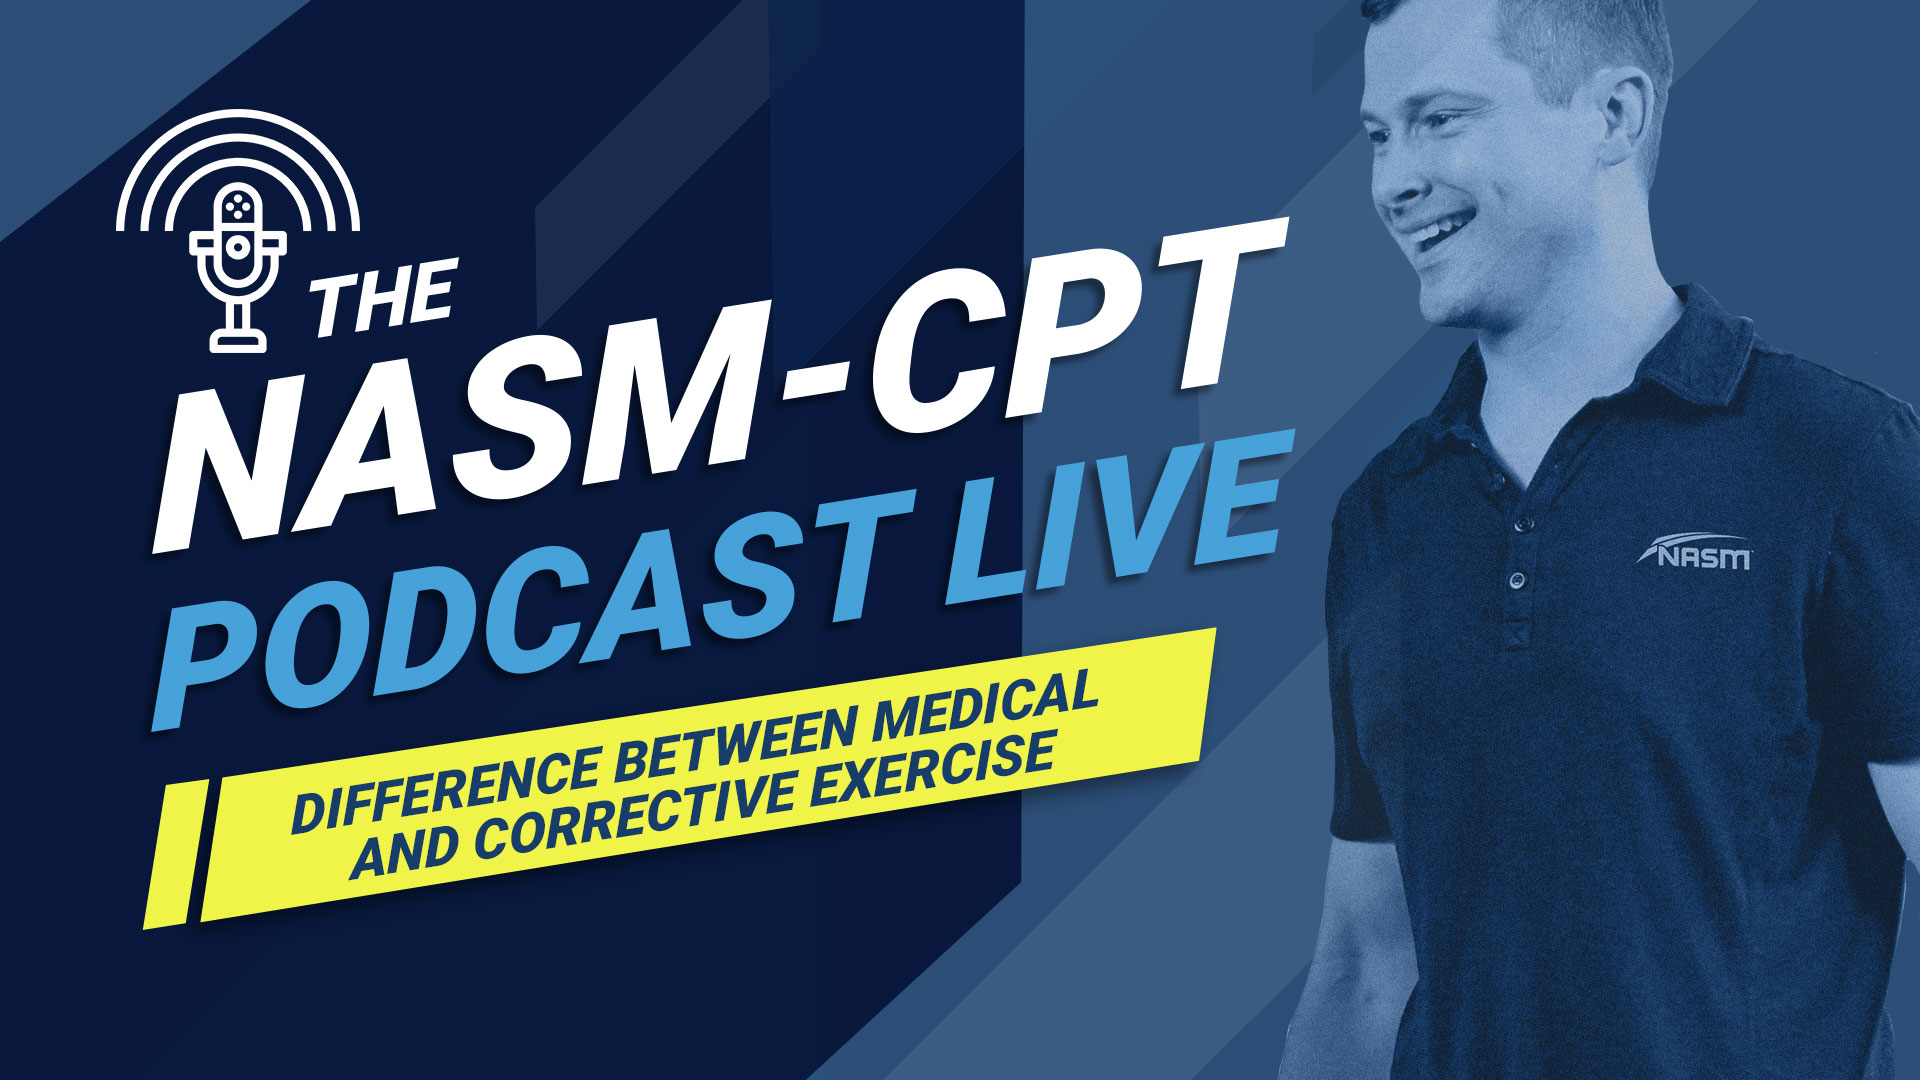 NASM-CPT podcast on corrective versus medical exercise